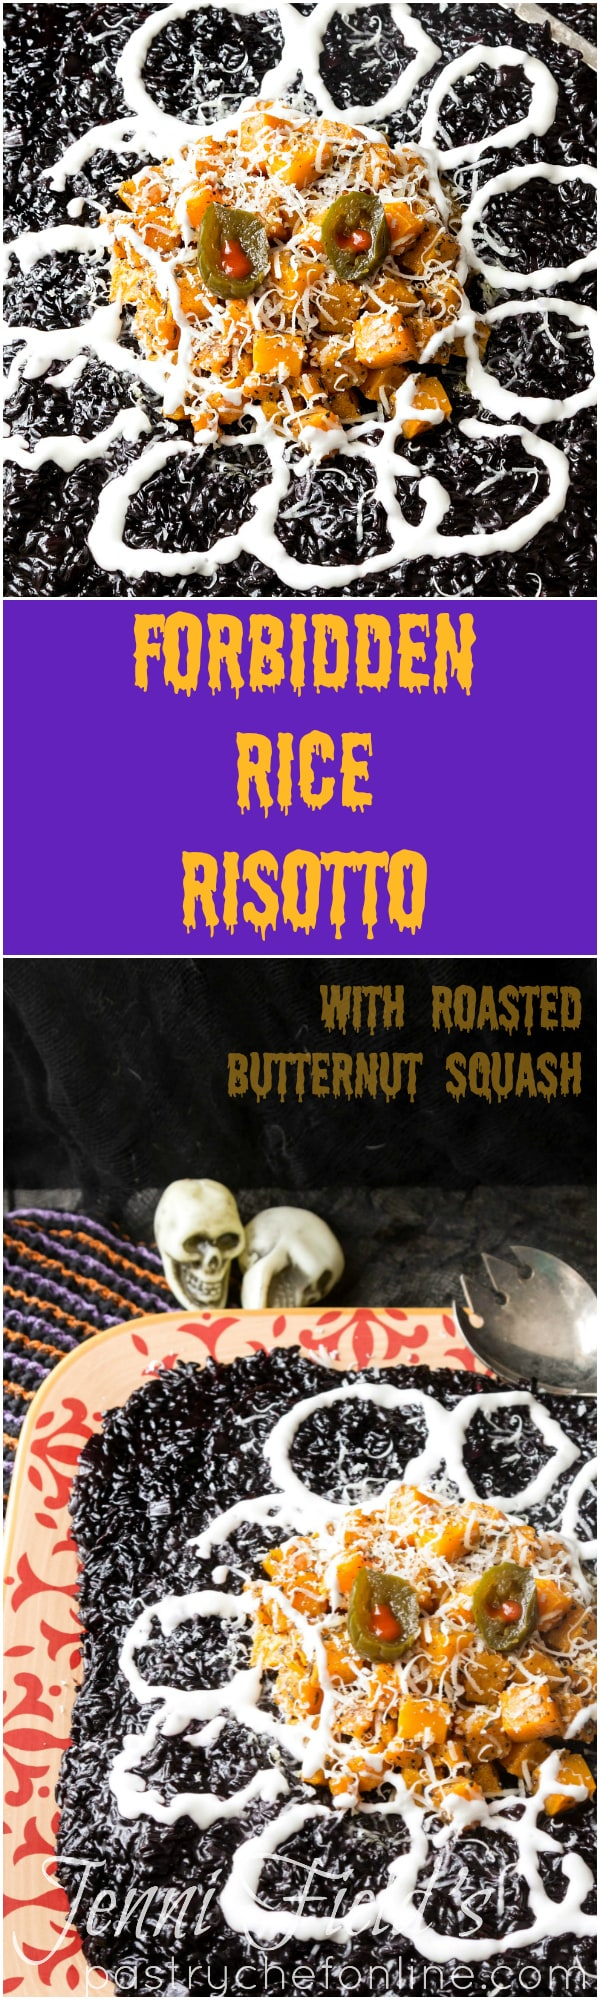 The perfect Halloween dinner party recipe: black rice risotto with roasted butternut squash. Spooky enough to get you in the Halloween spirit yet also an elegant side dish for any dinner party. | pastrychefonline.com